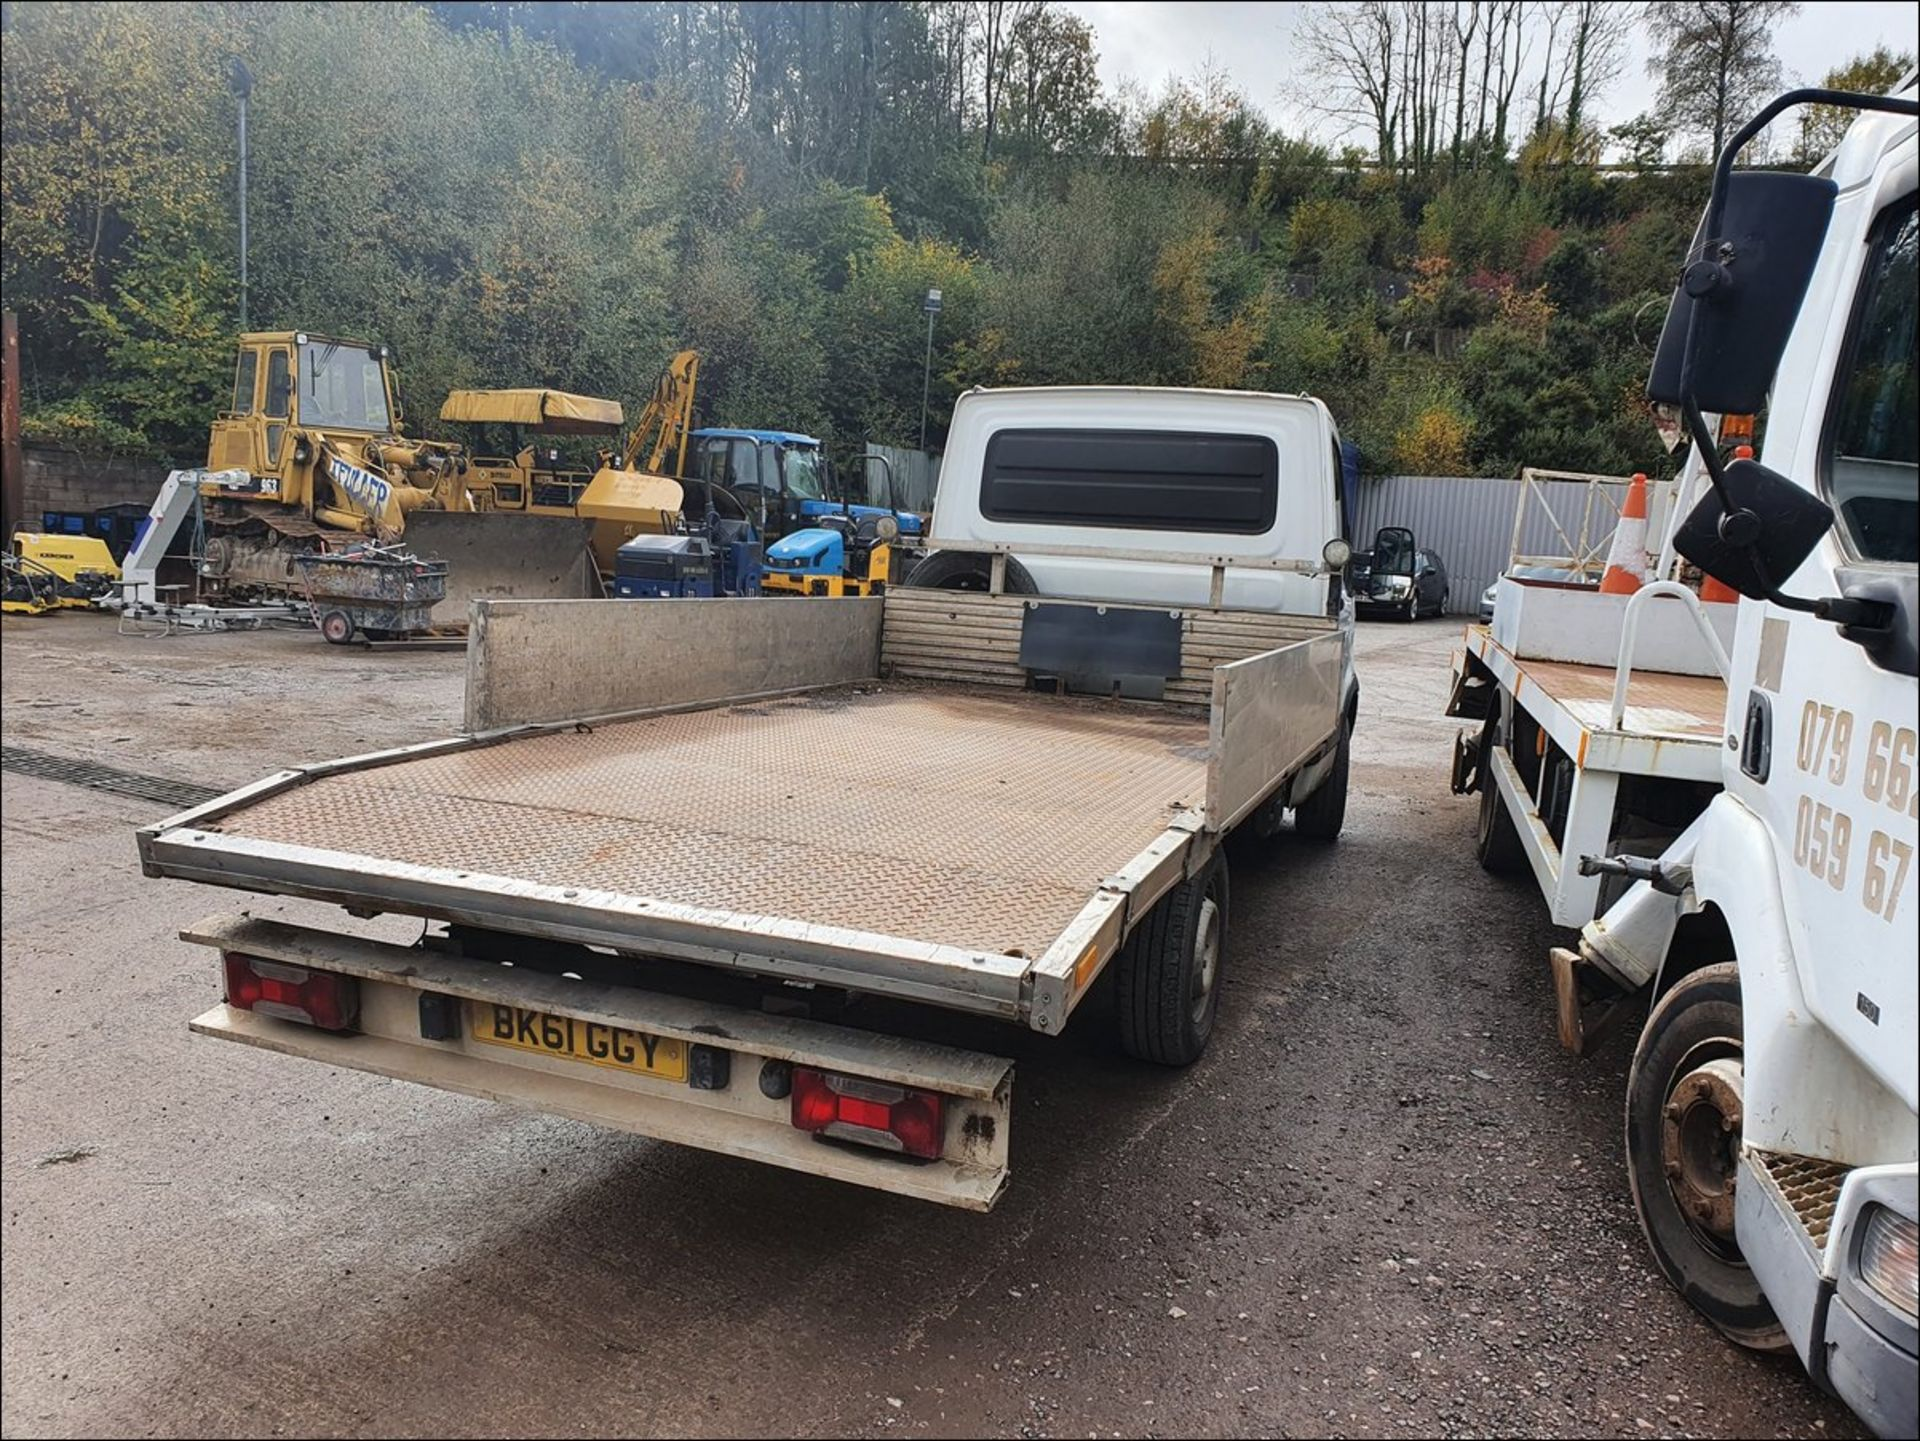 11/61 IVECO DAILY 35S11 MWB - 2287cc 2dr Flat Bed (White/blue, 194k) - Image 6 of 9